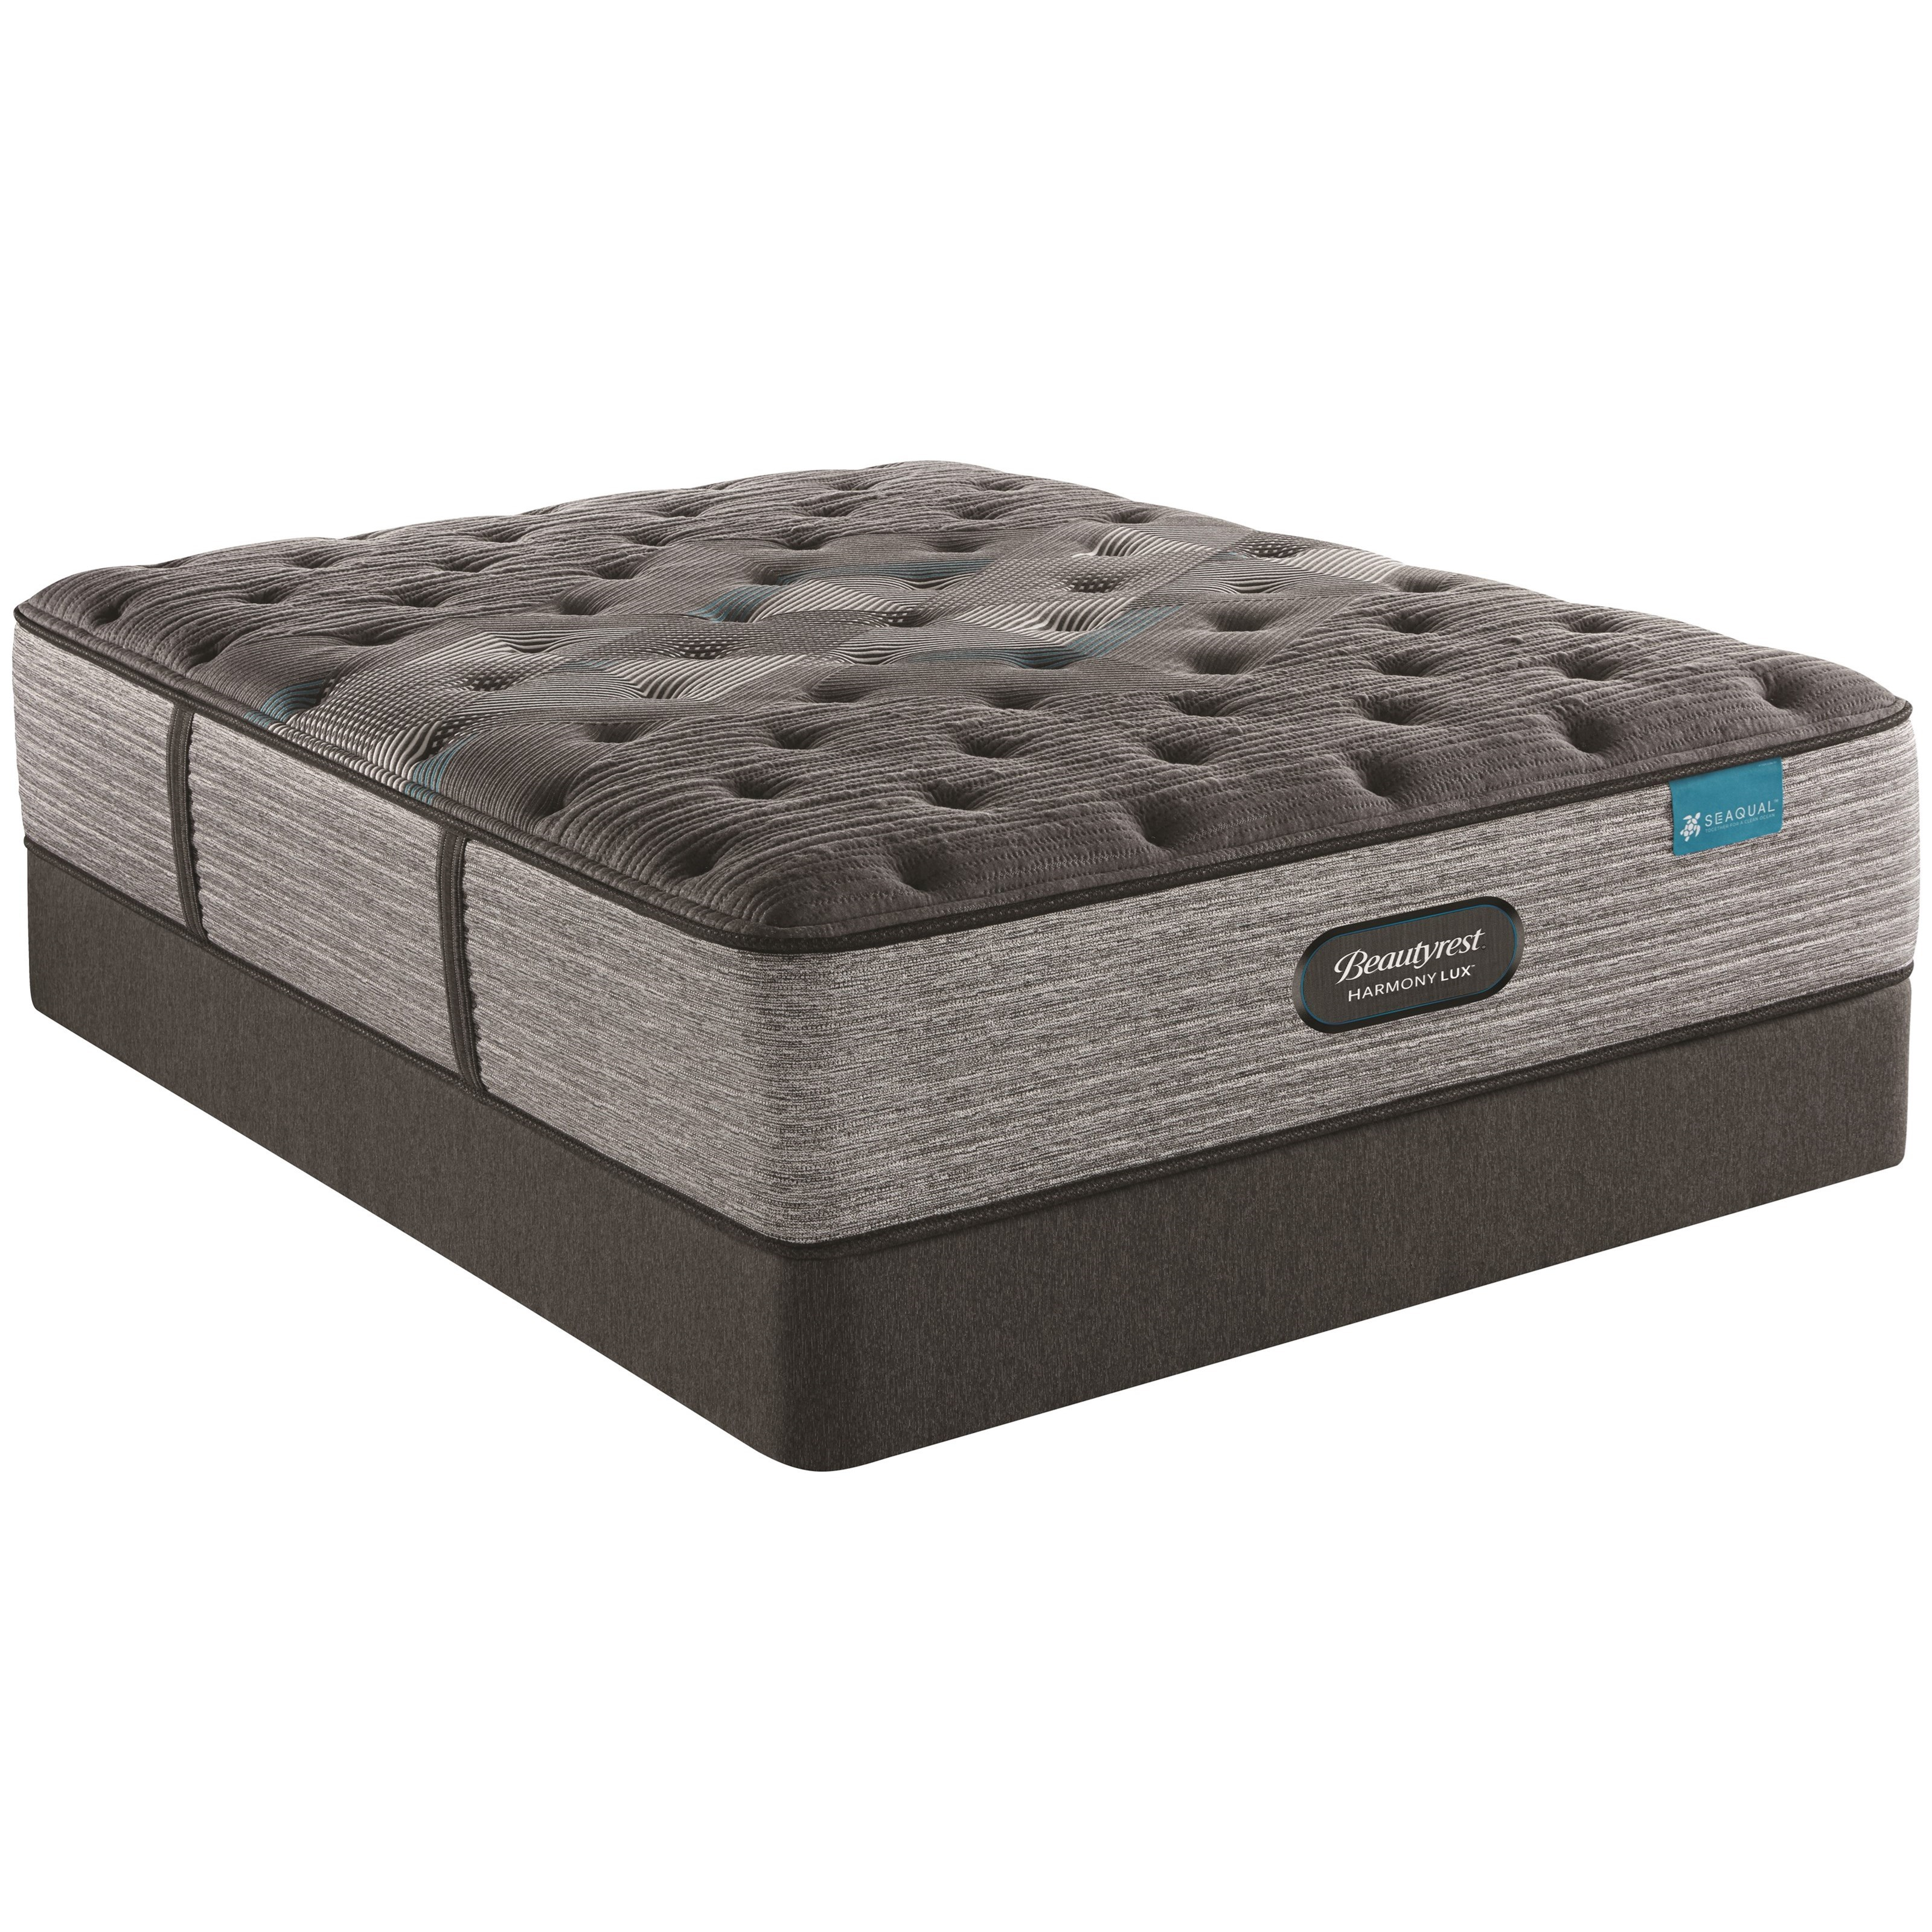 "Diamond Series Medium King 14 3/4"" Med Premium Mattress Set by Beautyrest at Rotmans"